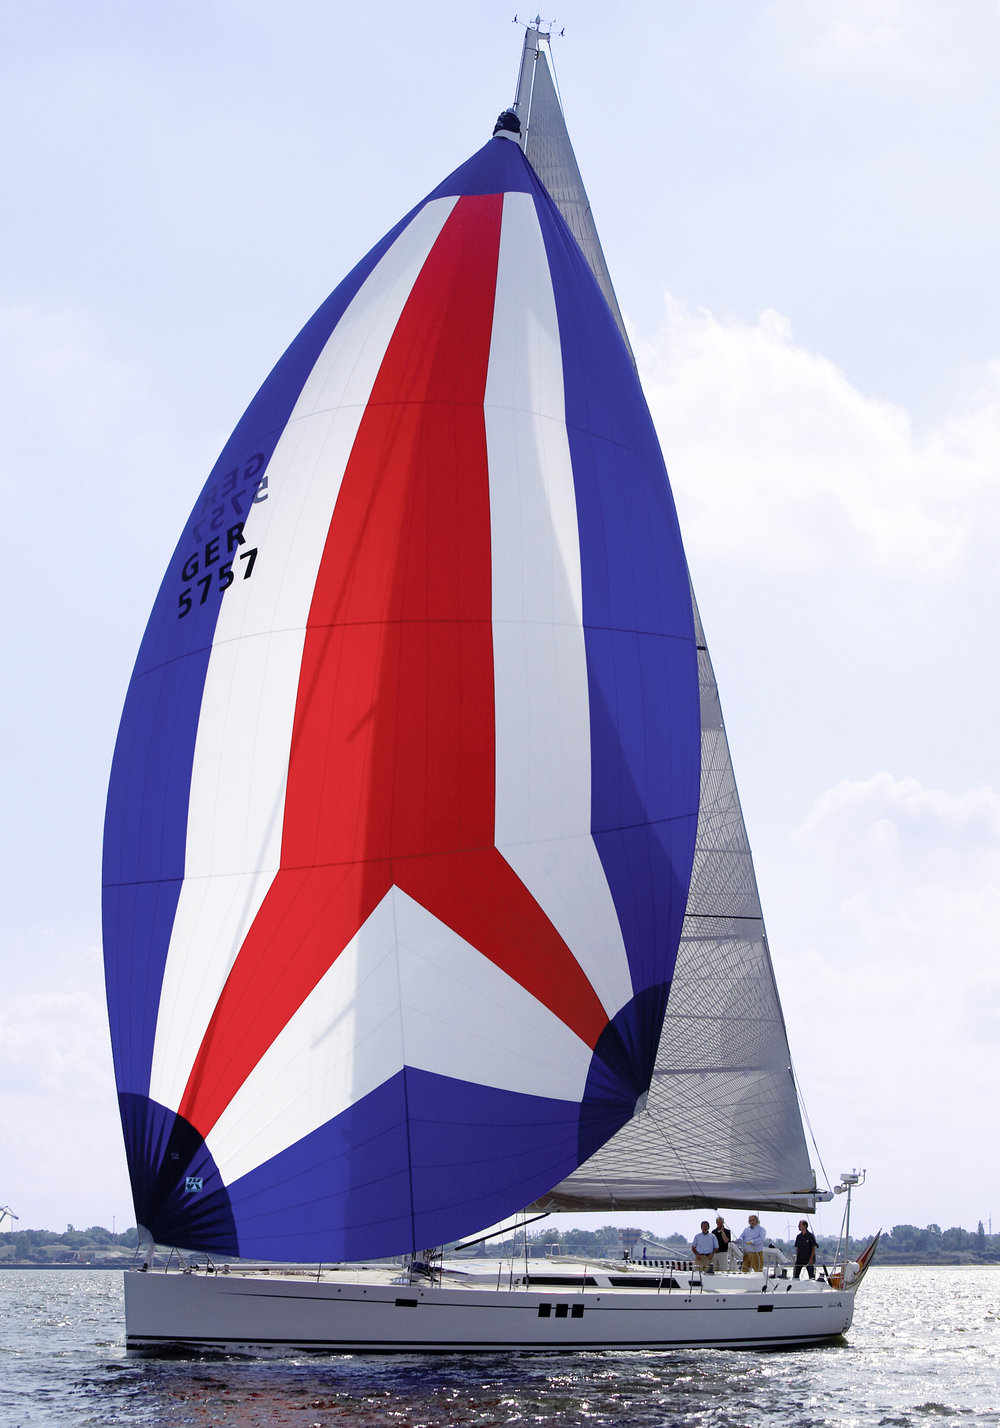 UK Sailmakers cruising spinnaker makes downwind sailing more fun on boats of all sizes.